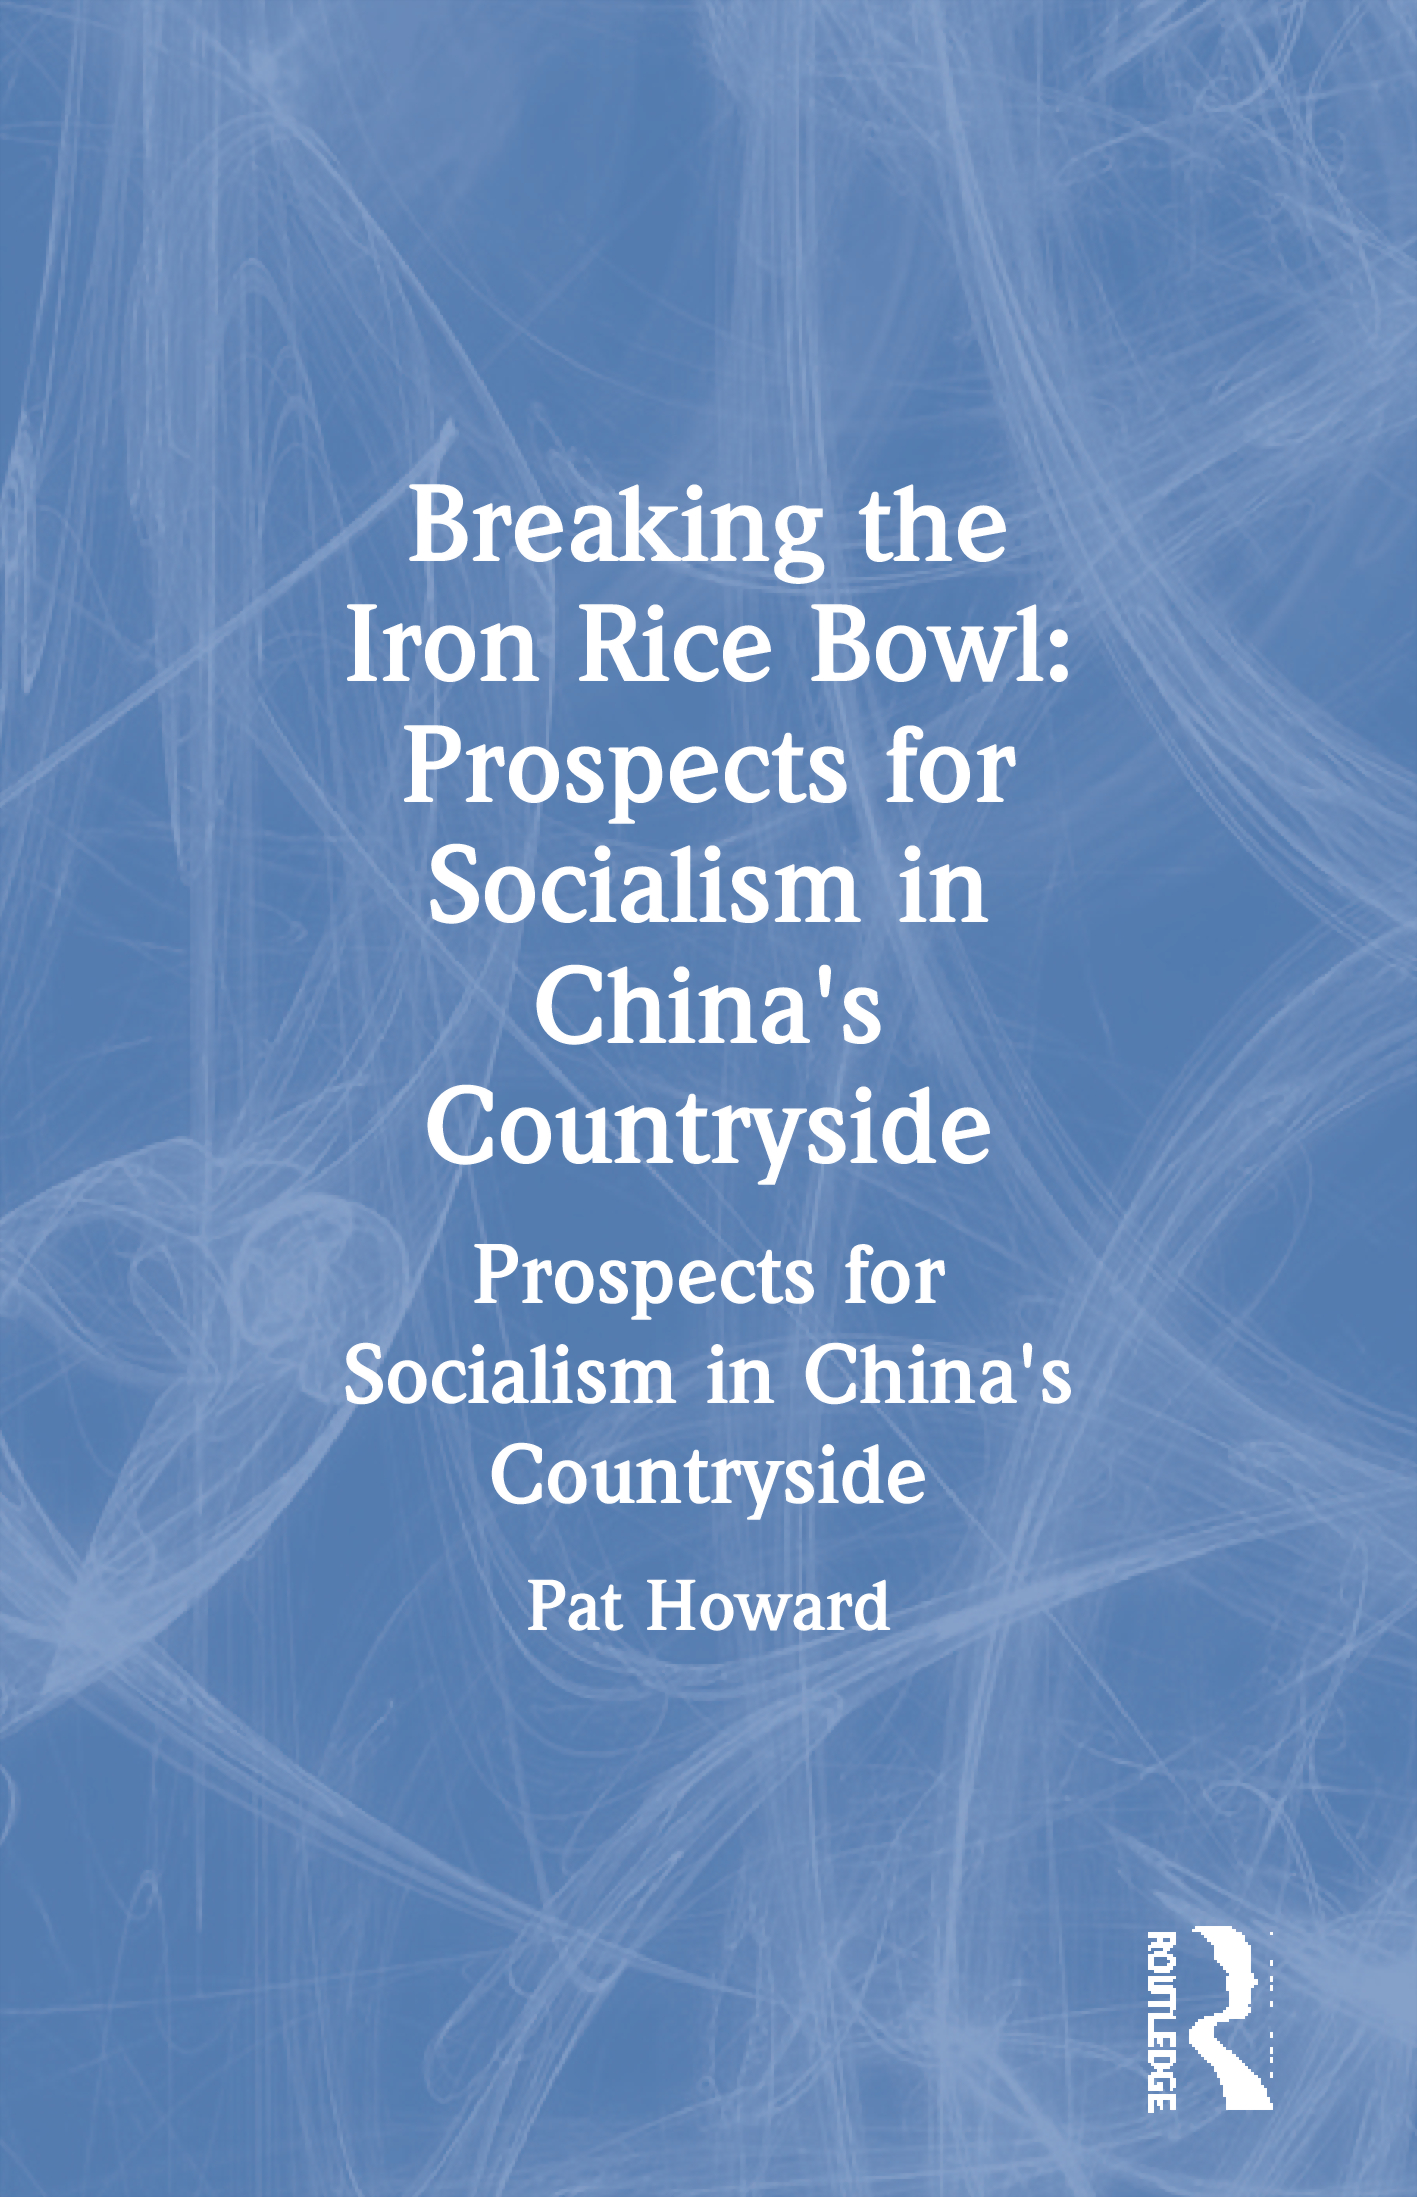 Breaking the Iron Rice Bowl: Prospects for Socialism in China's Countryside book cover